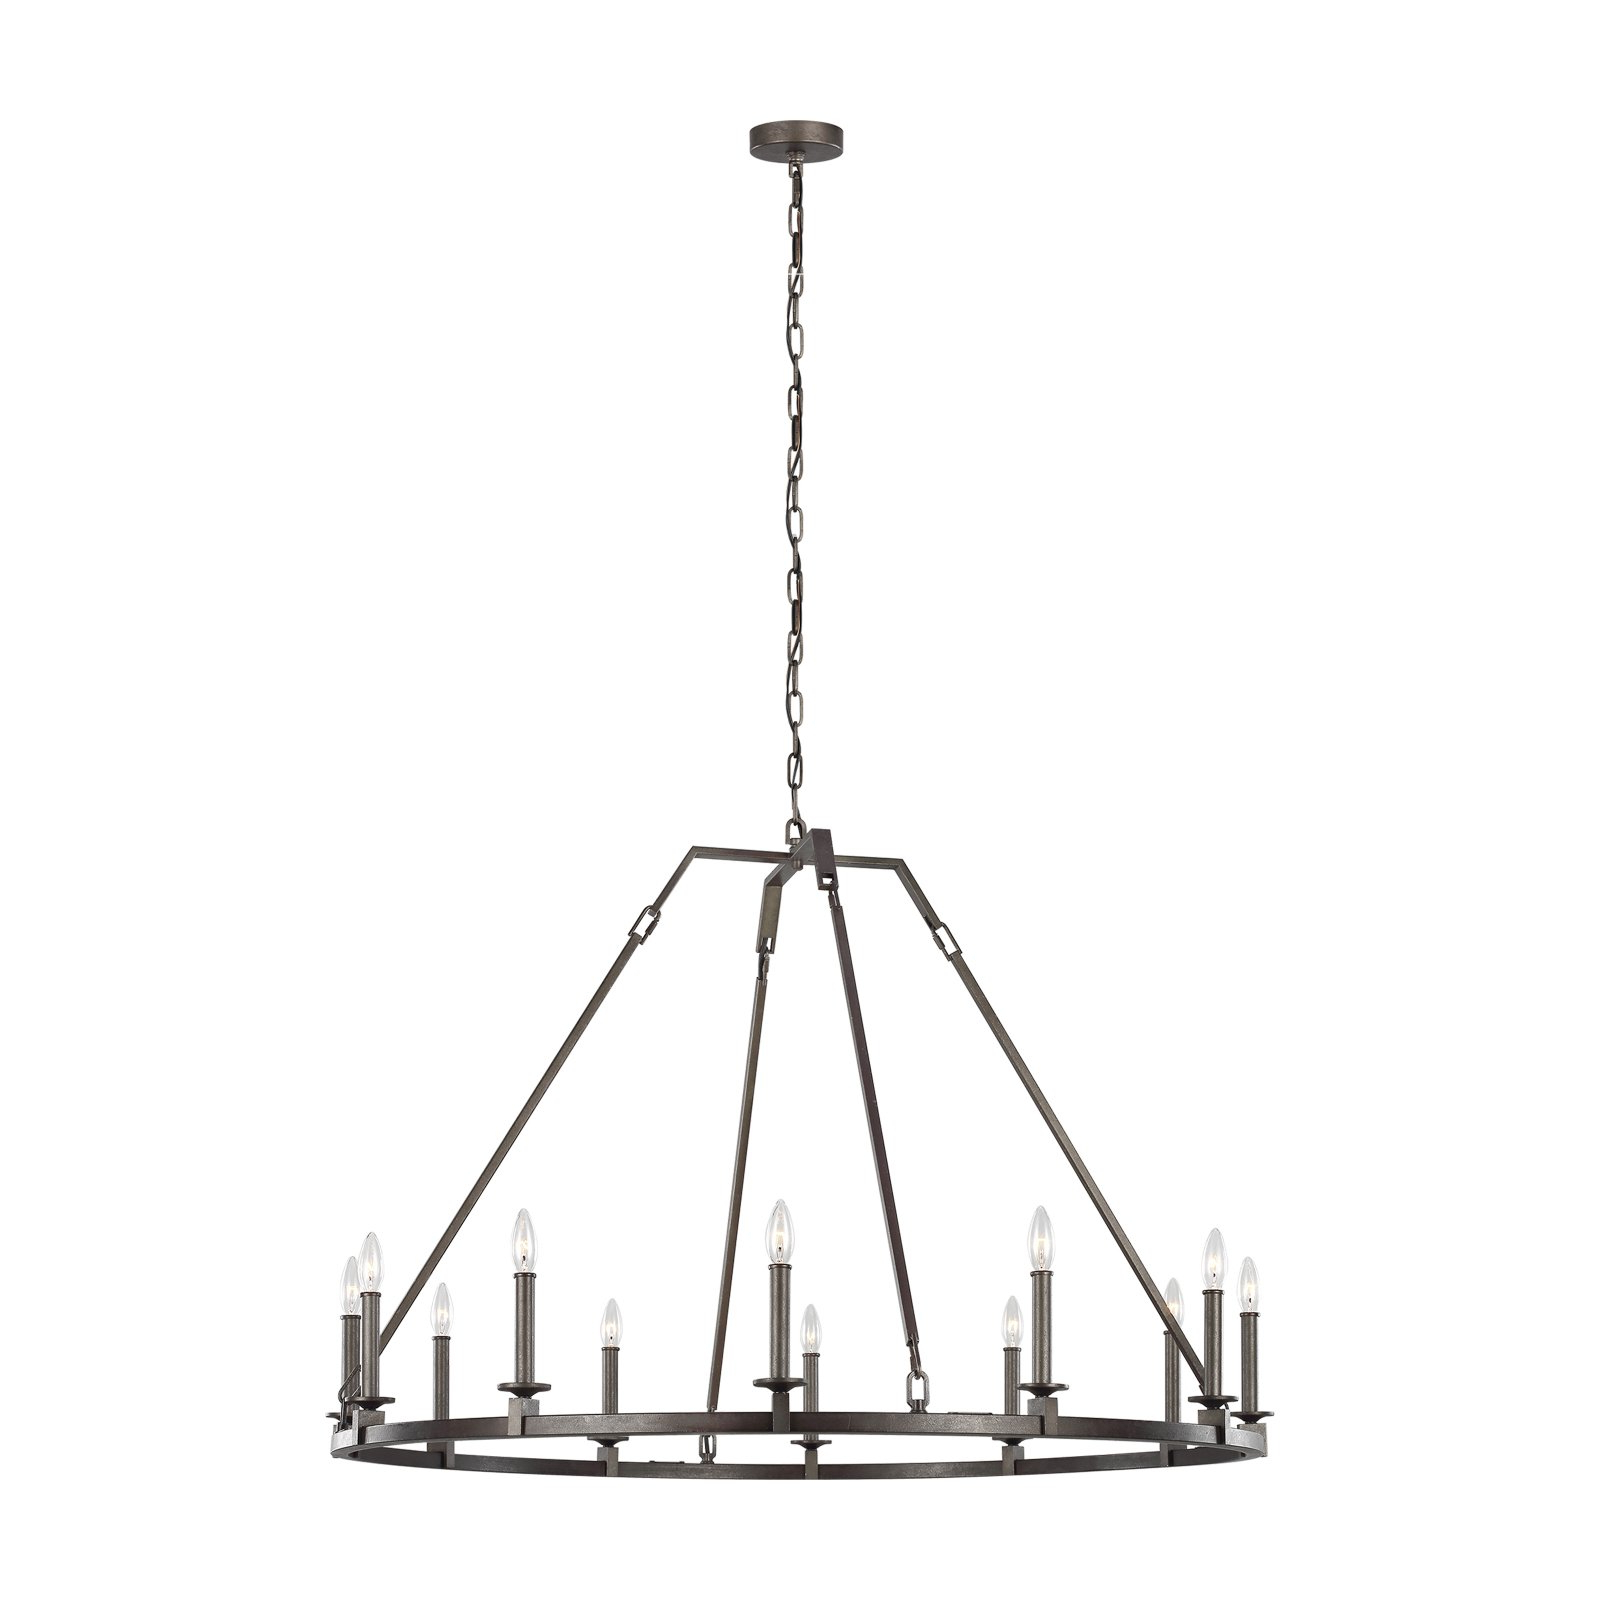 Shayla 12 Light Wagon Wheel Chandeliers With Latest Feiss Landen F3216/12Sms Chandelier (View 21 of 25)